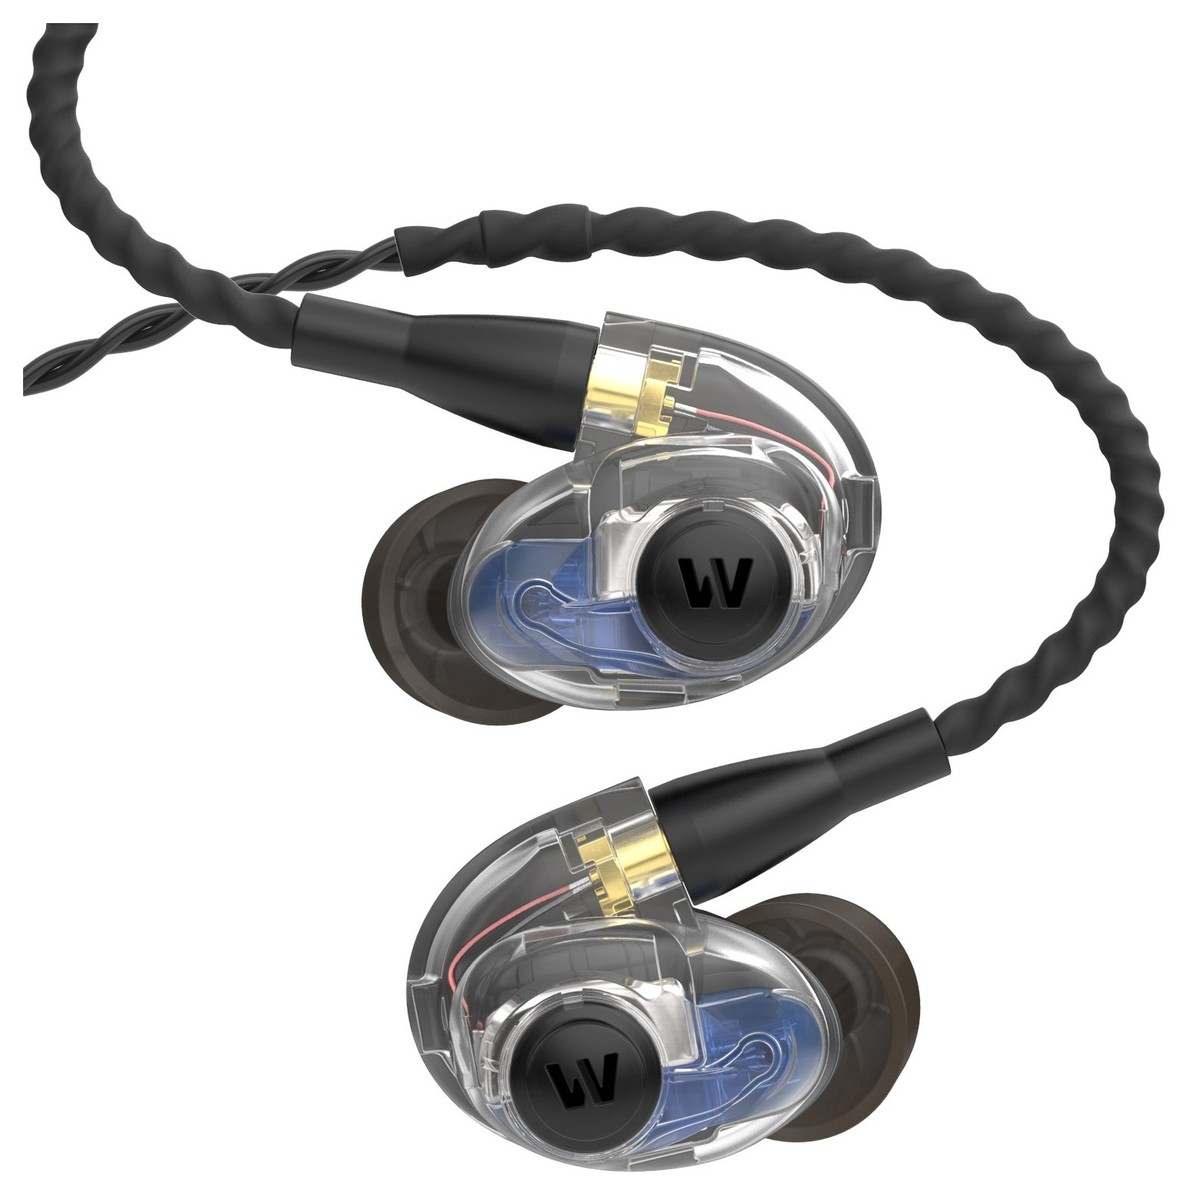 westone am pro 20 in ear monitors clear at gear4music. Black Bedroom Furniture Sets. Home Design Ideas